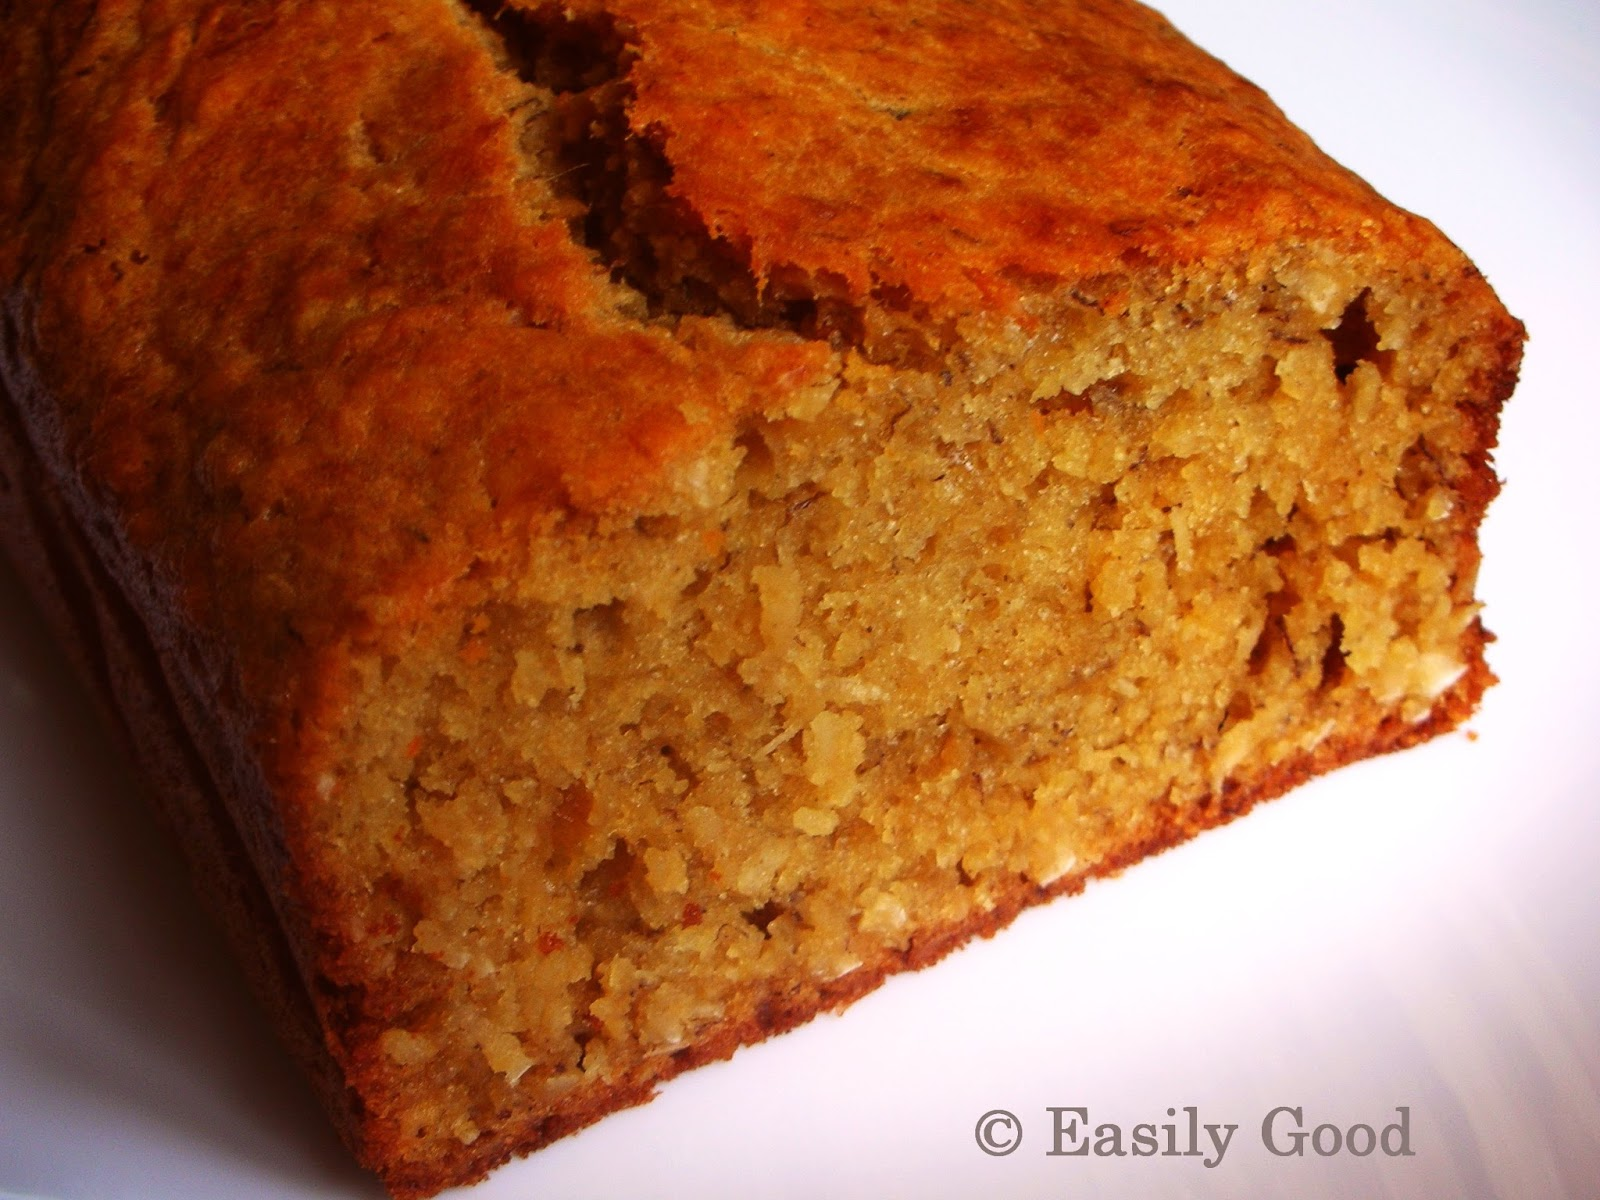 Easily Good Eats: Caramelised Banana Coconut Cake Recipe